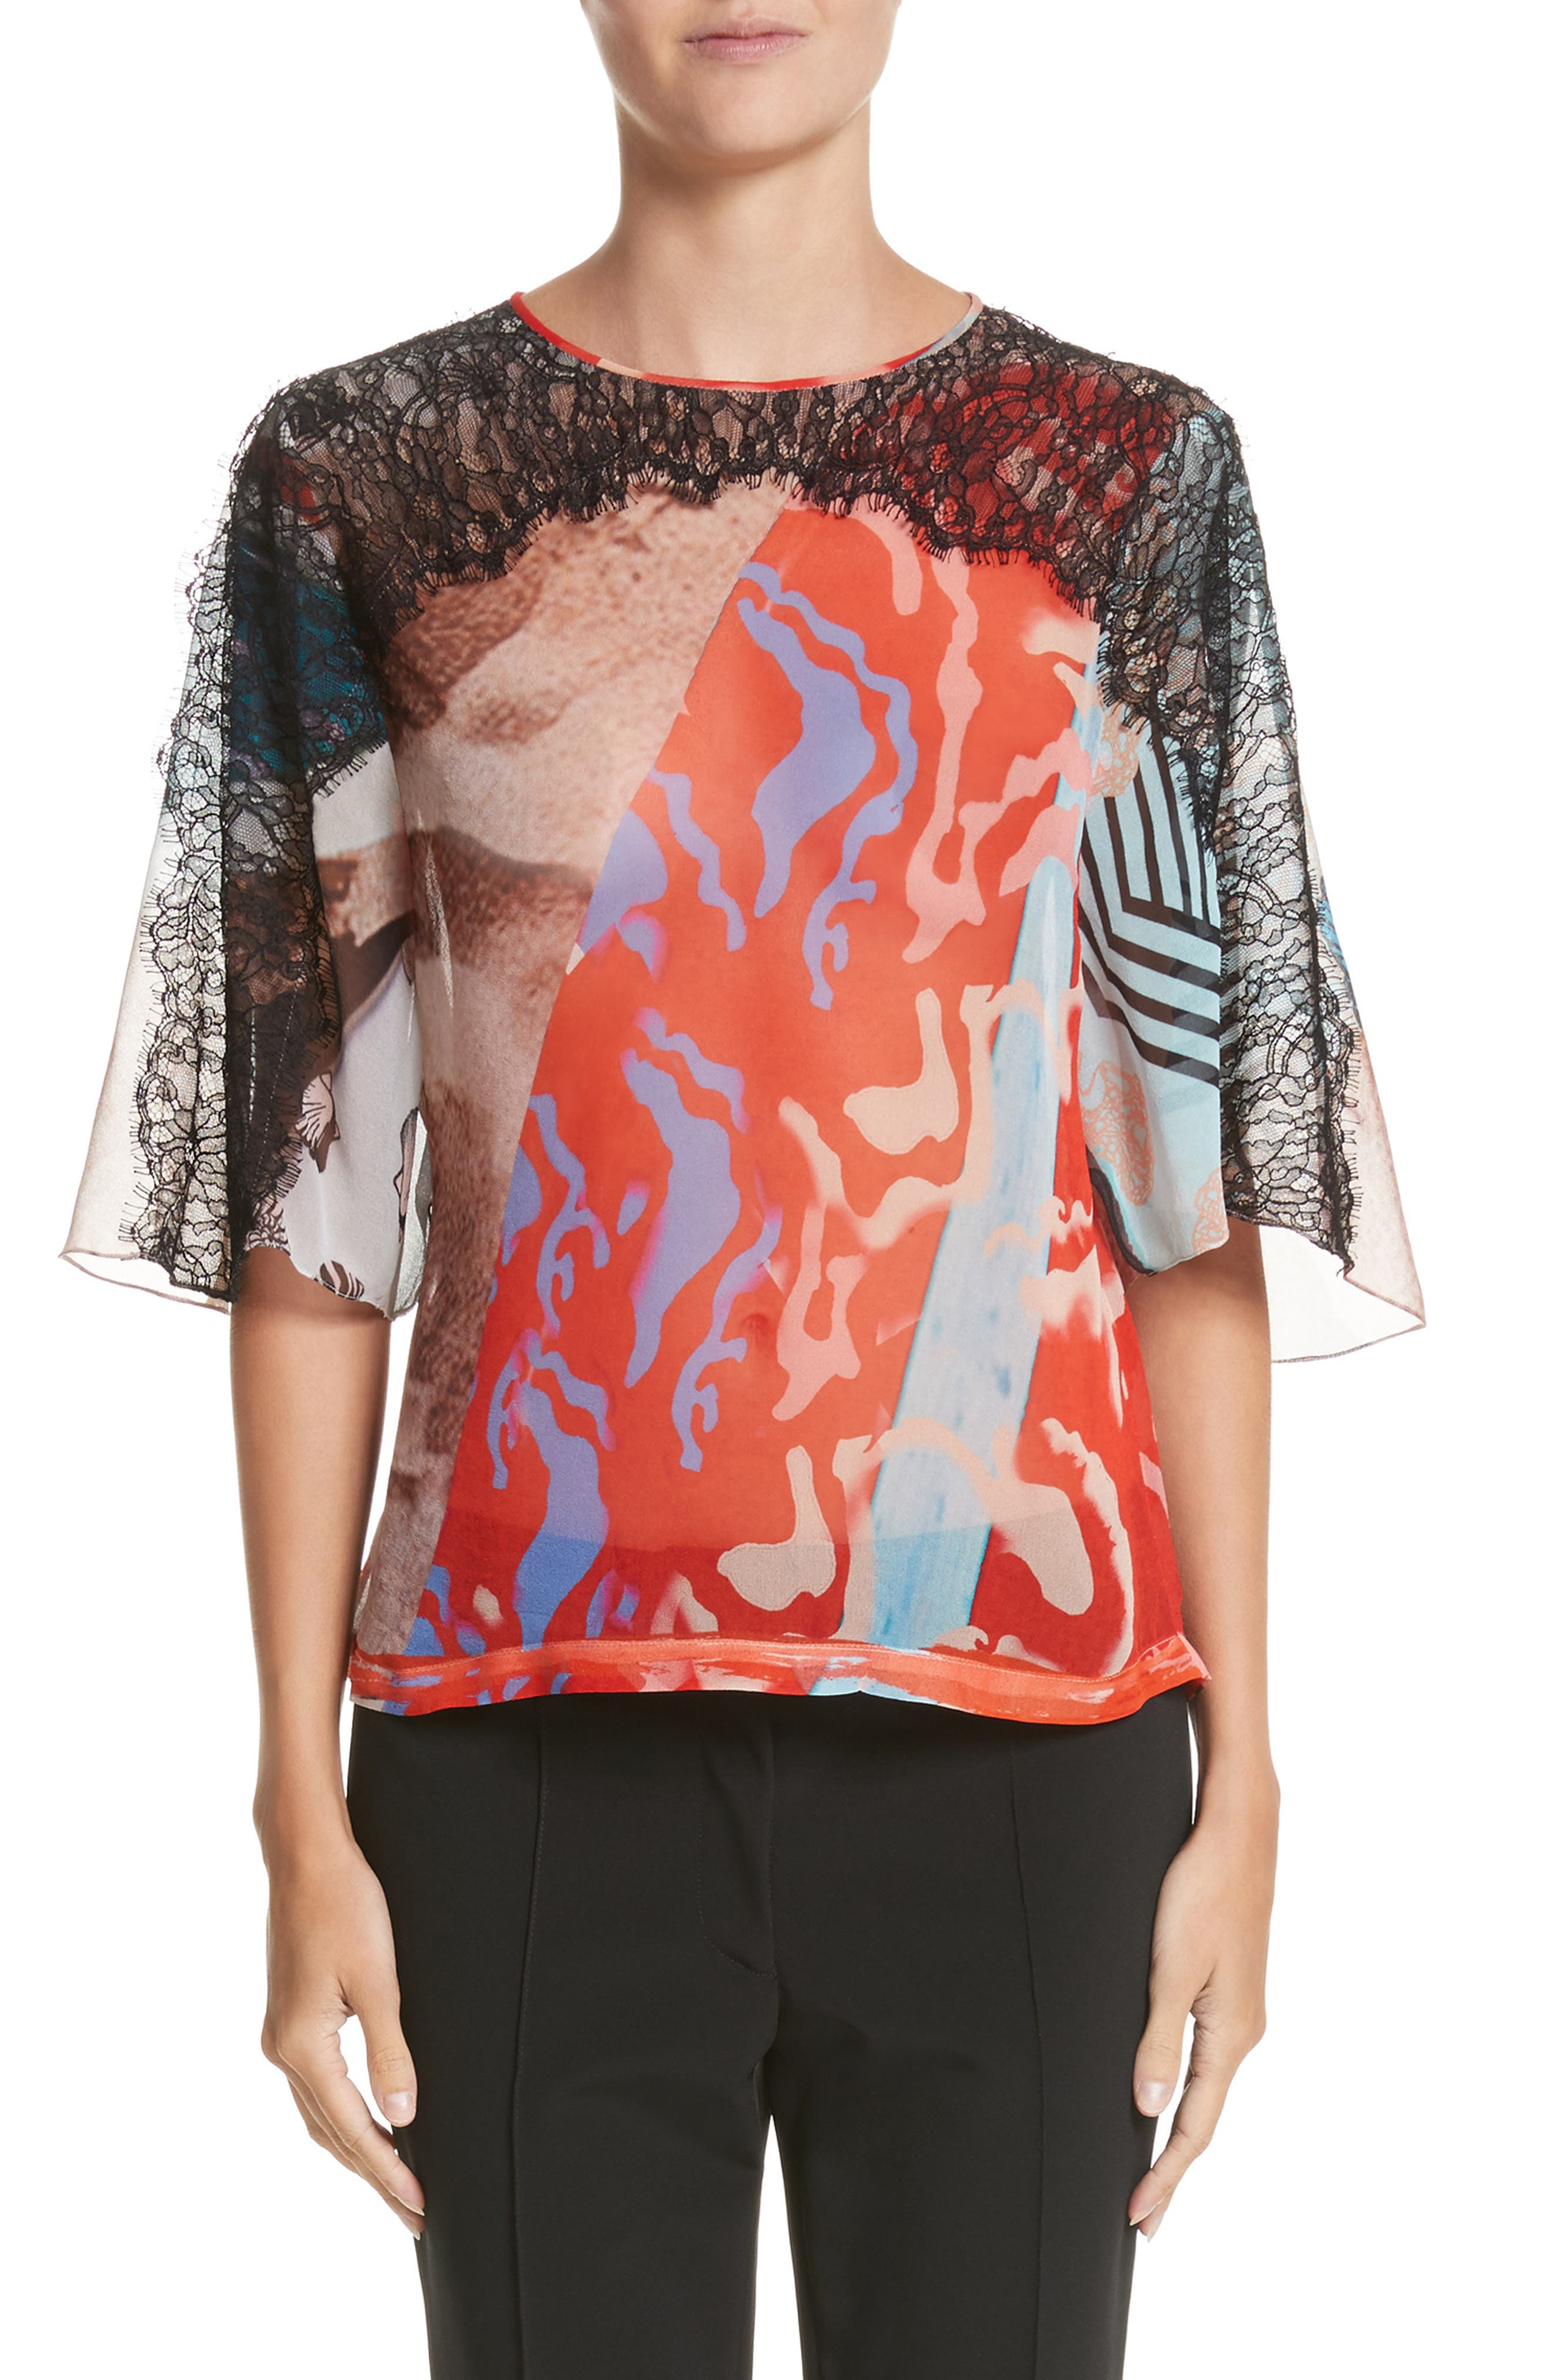 Alternate Image 1 Selected - Yigal Azrouël Lace & Print Silk Top